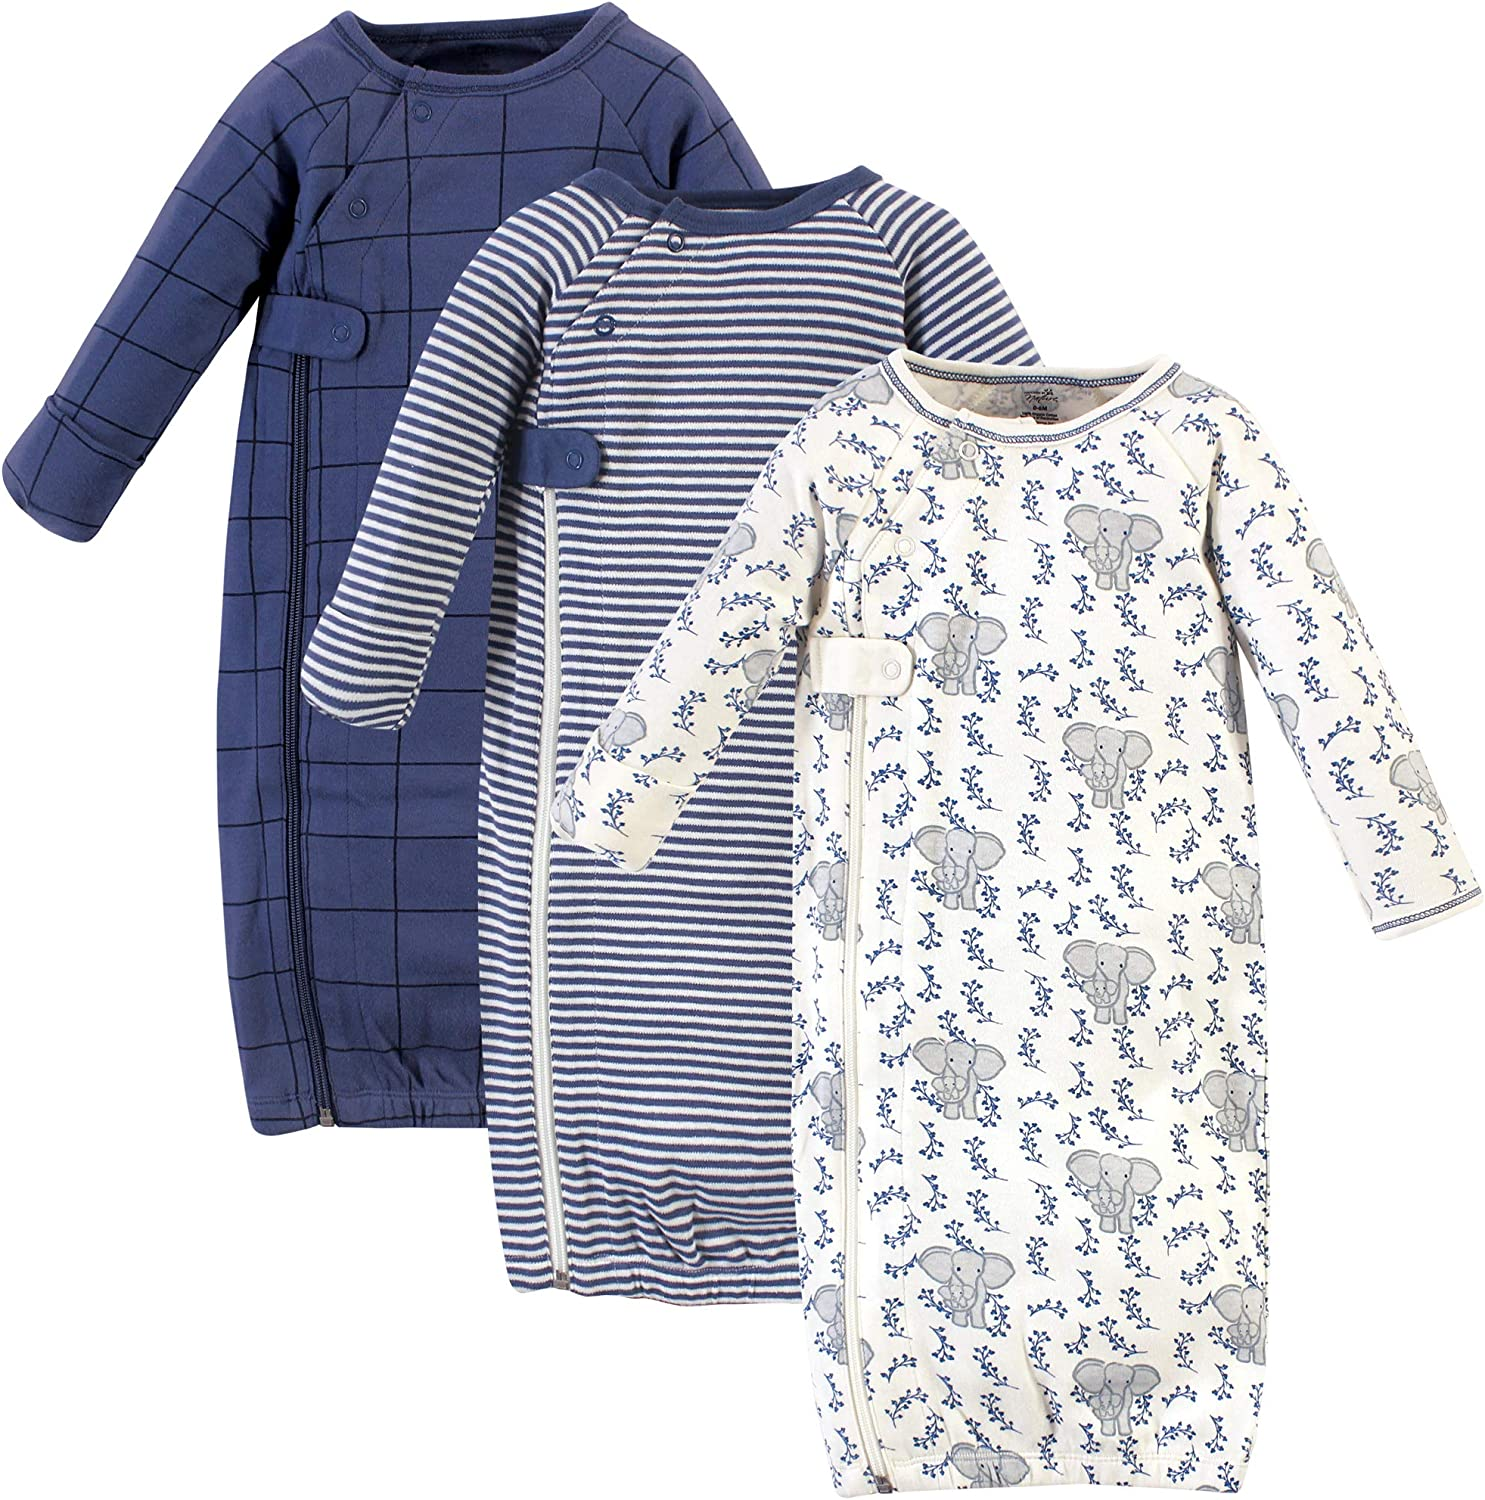 Touched by Nature Baby Organic Cotton Zipper Gowns